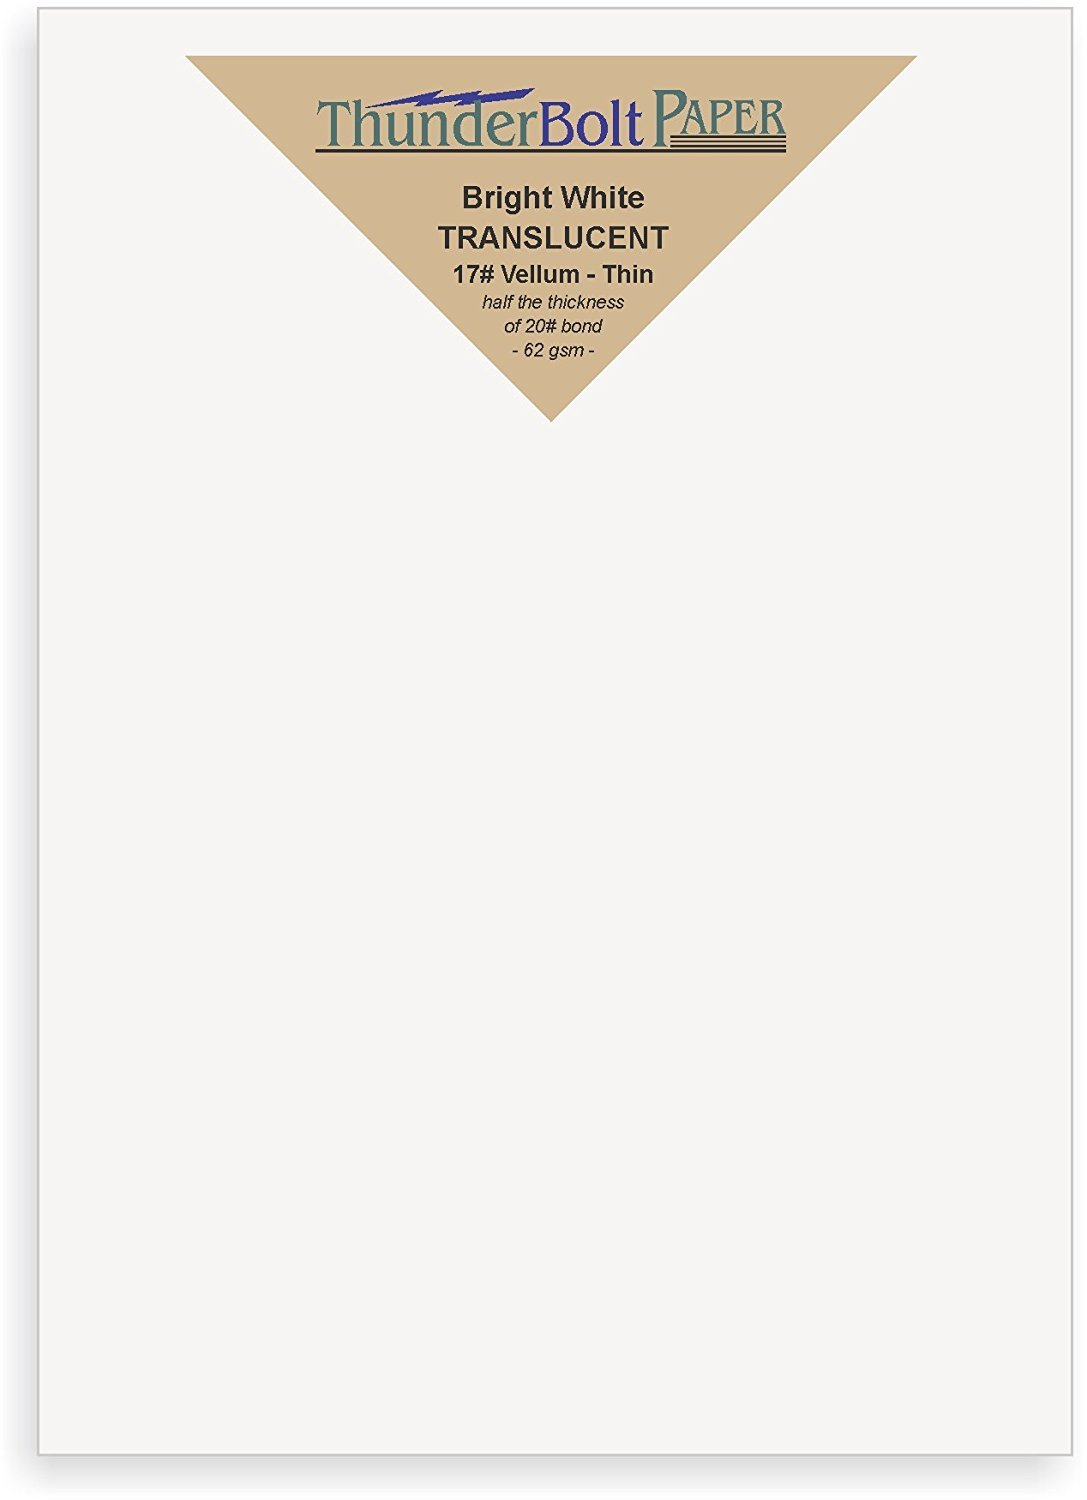 100 Bright White Translucent 17# Thin Sheets - 5 X 7 (5X7 Inches) Photo|Card|Frame Size - 17 lb/pound Light Weight Fine Quality Paper - Tracing, Fun or Formal Use - Not a Clear Transparent TBP